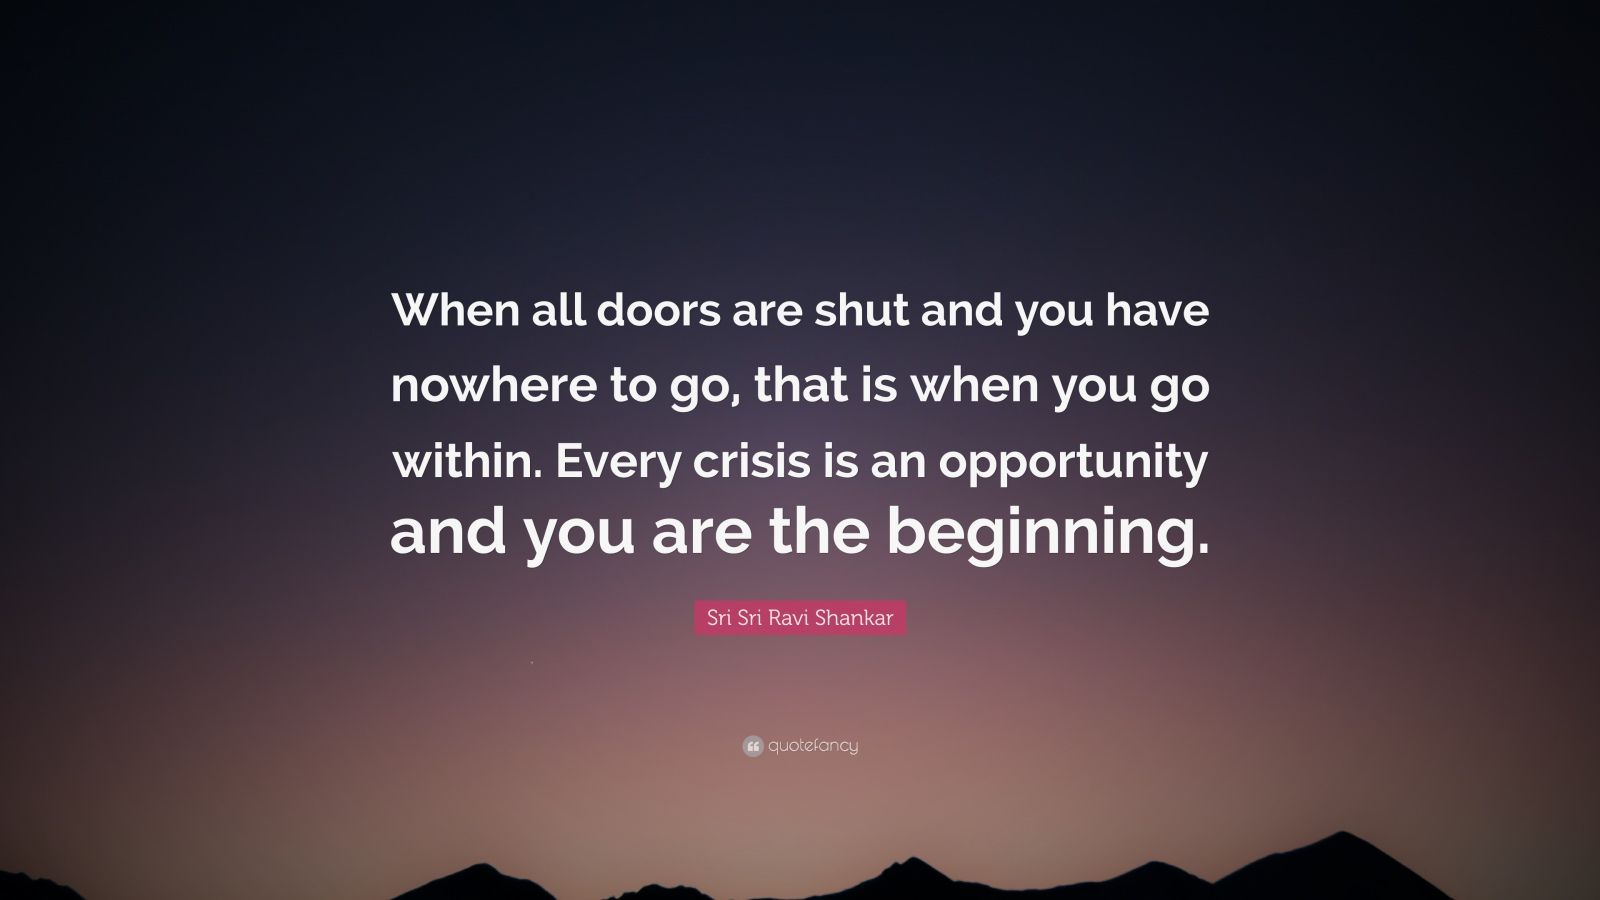 """Sri Sri Ravi Shankar Quote: """"When all doors are shut and you have nowhere to go, that is when you go within. Every crisis is an opportunity and you are the beginning."""""""